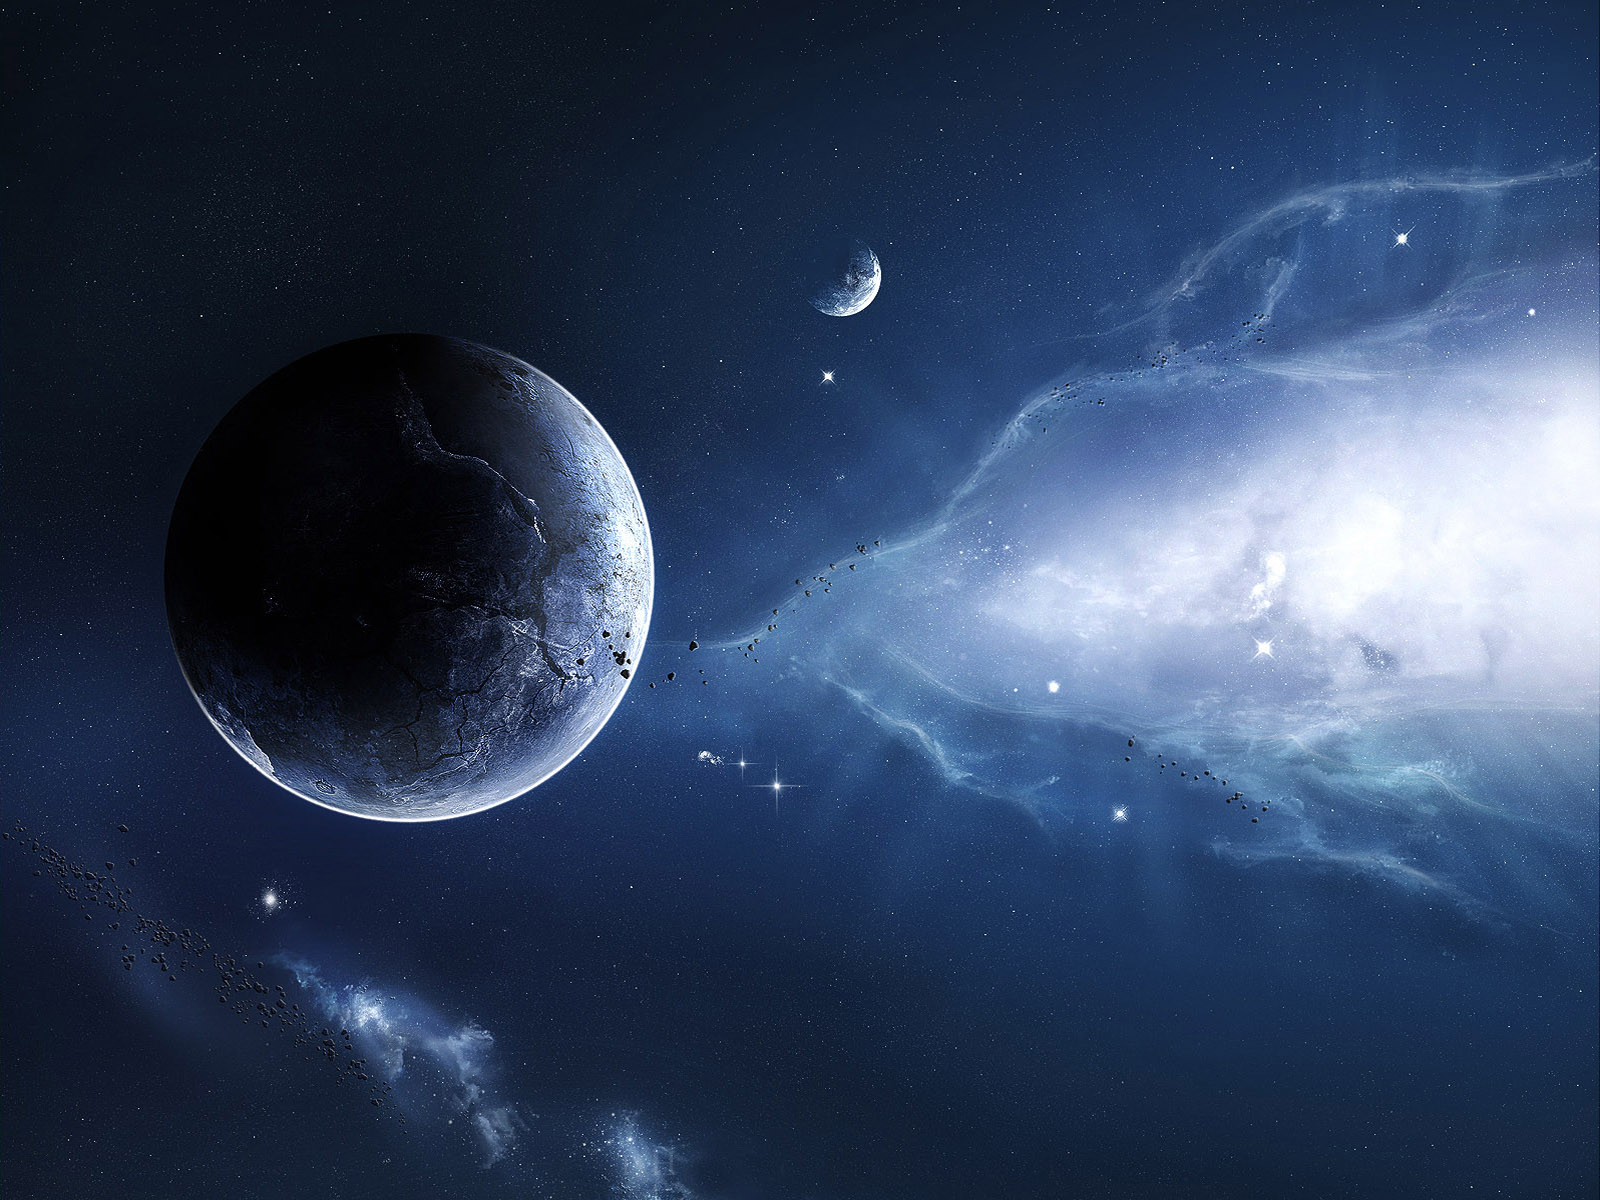 Future Planet Wallpapers HD Wallpapers 1600x1200